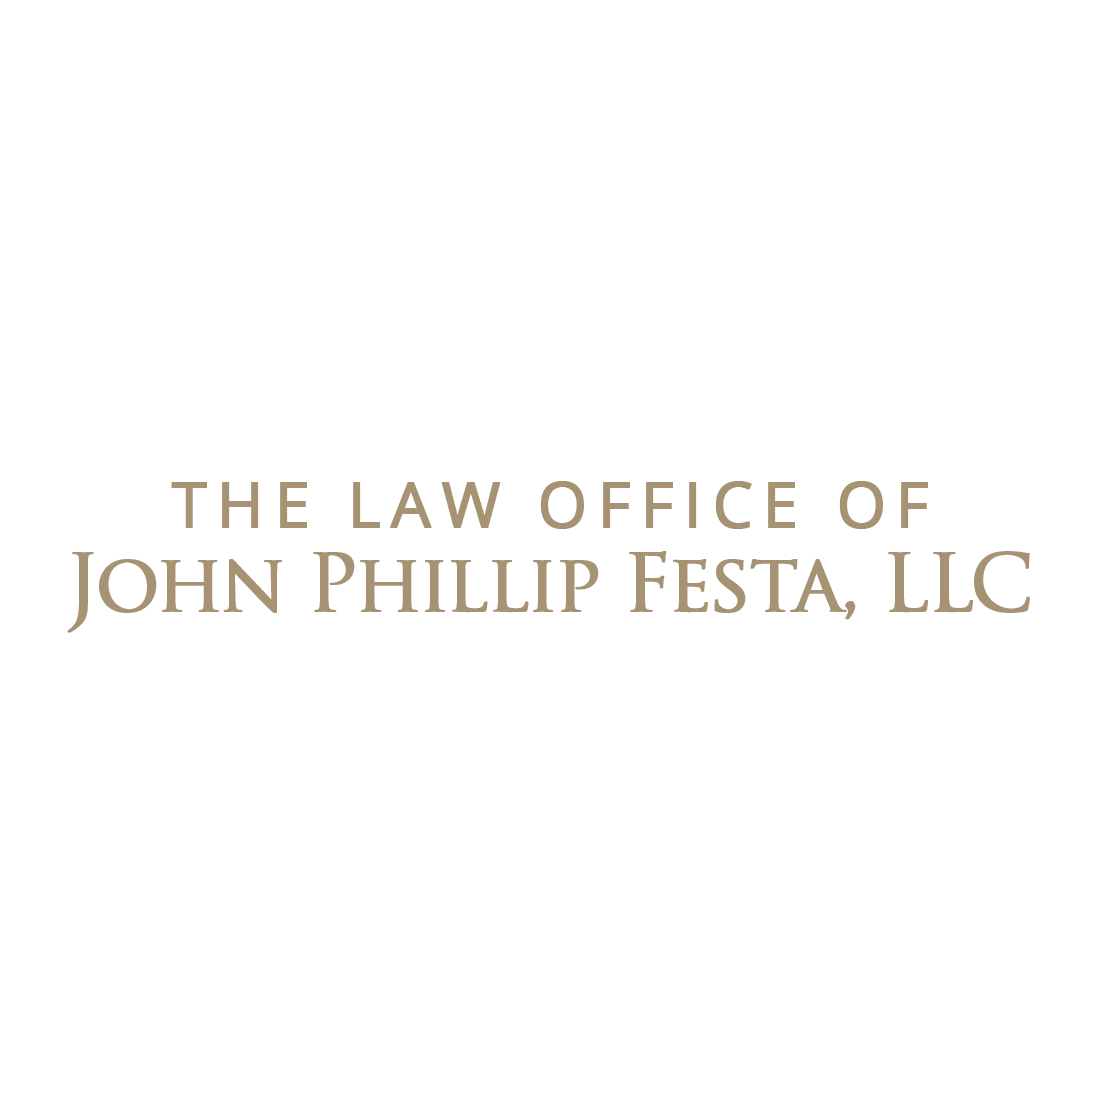 The Law Office of John Phillip Festa, LLC